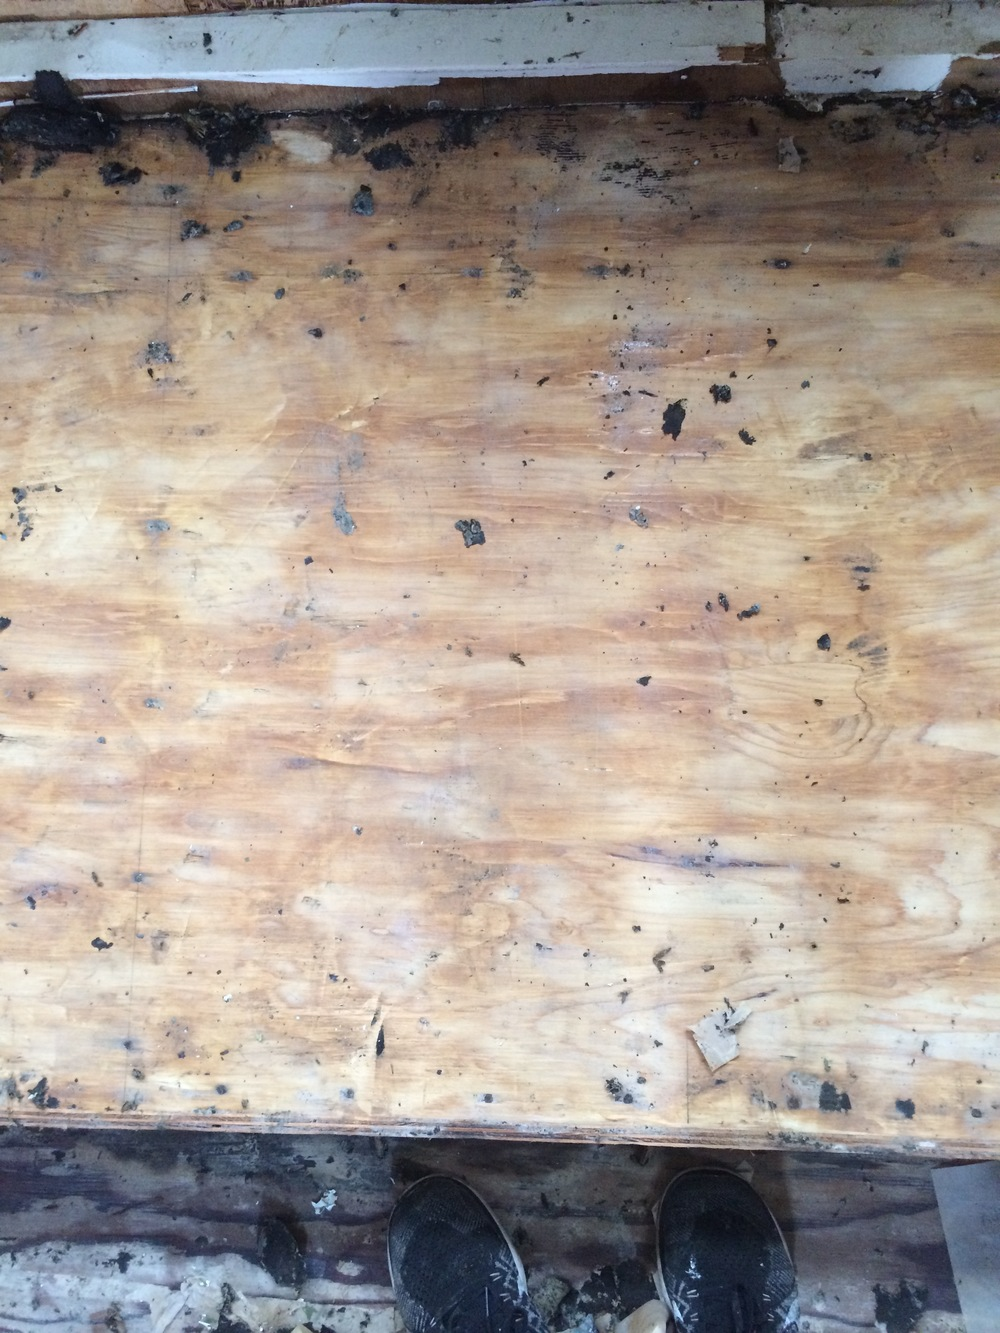 Original plywood floors after glue was scraped off